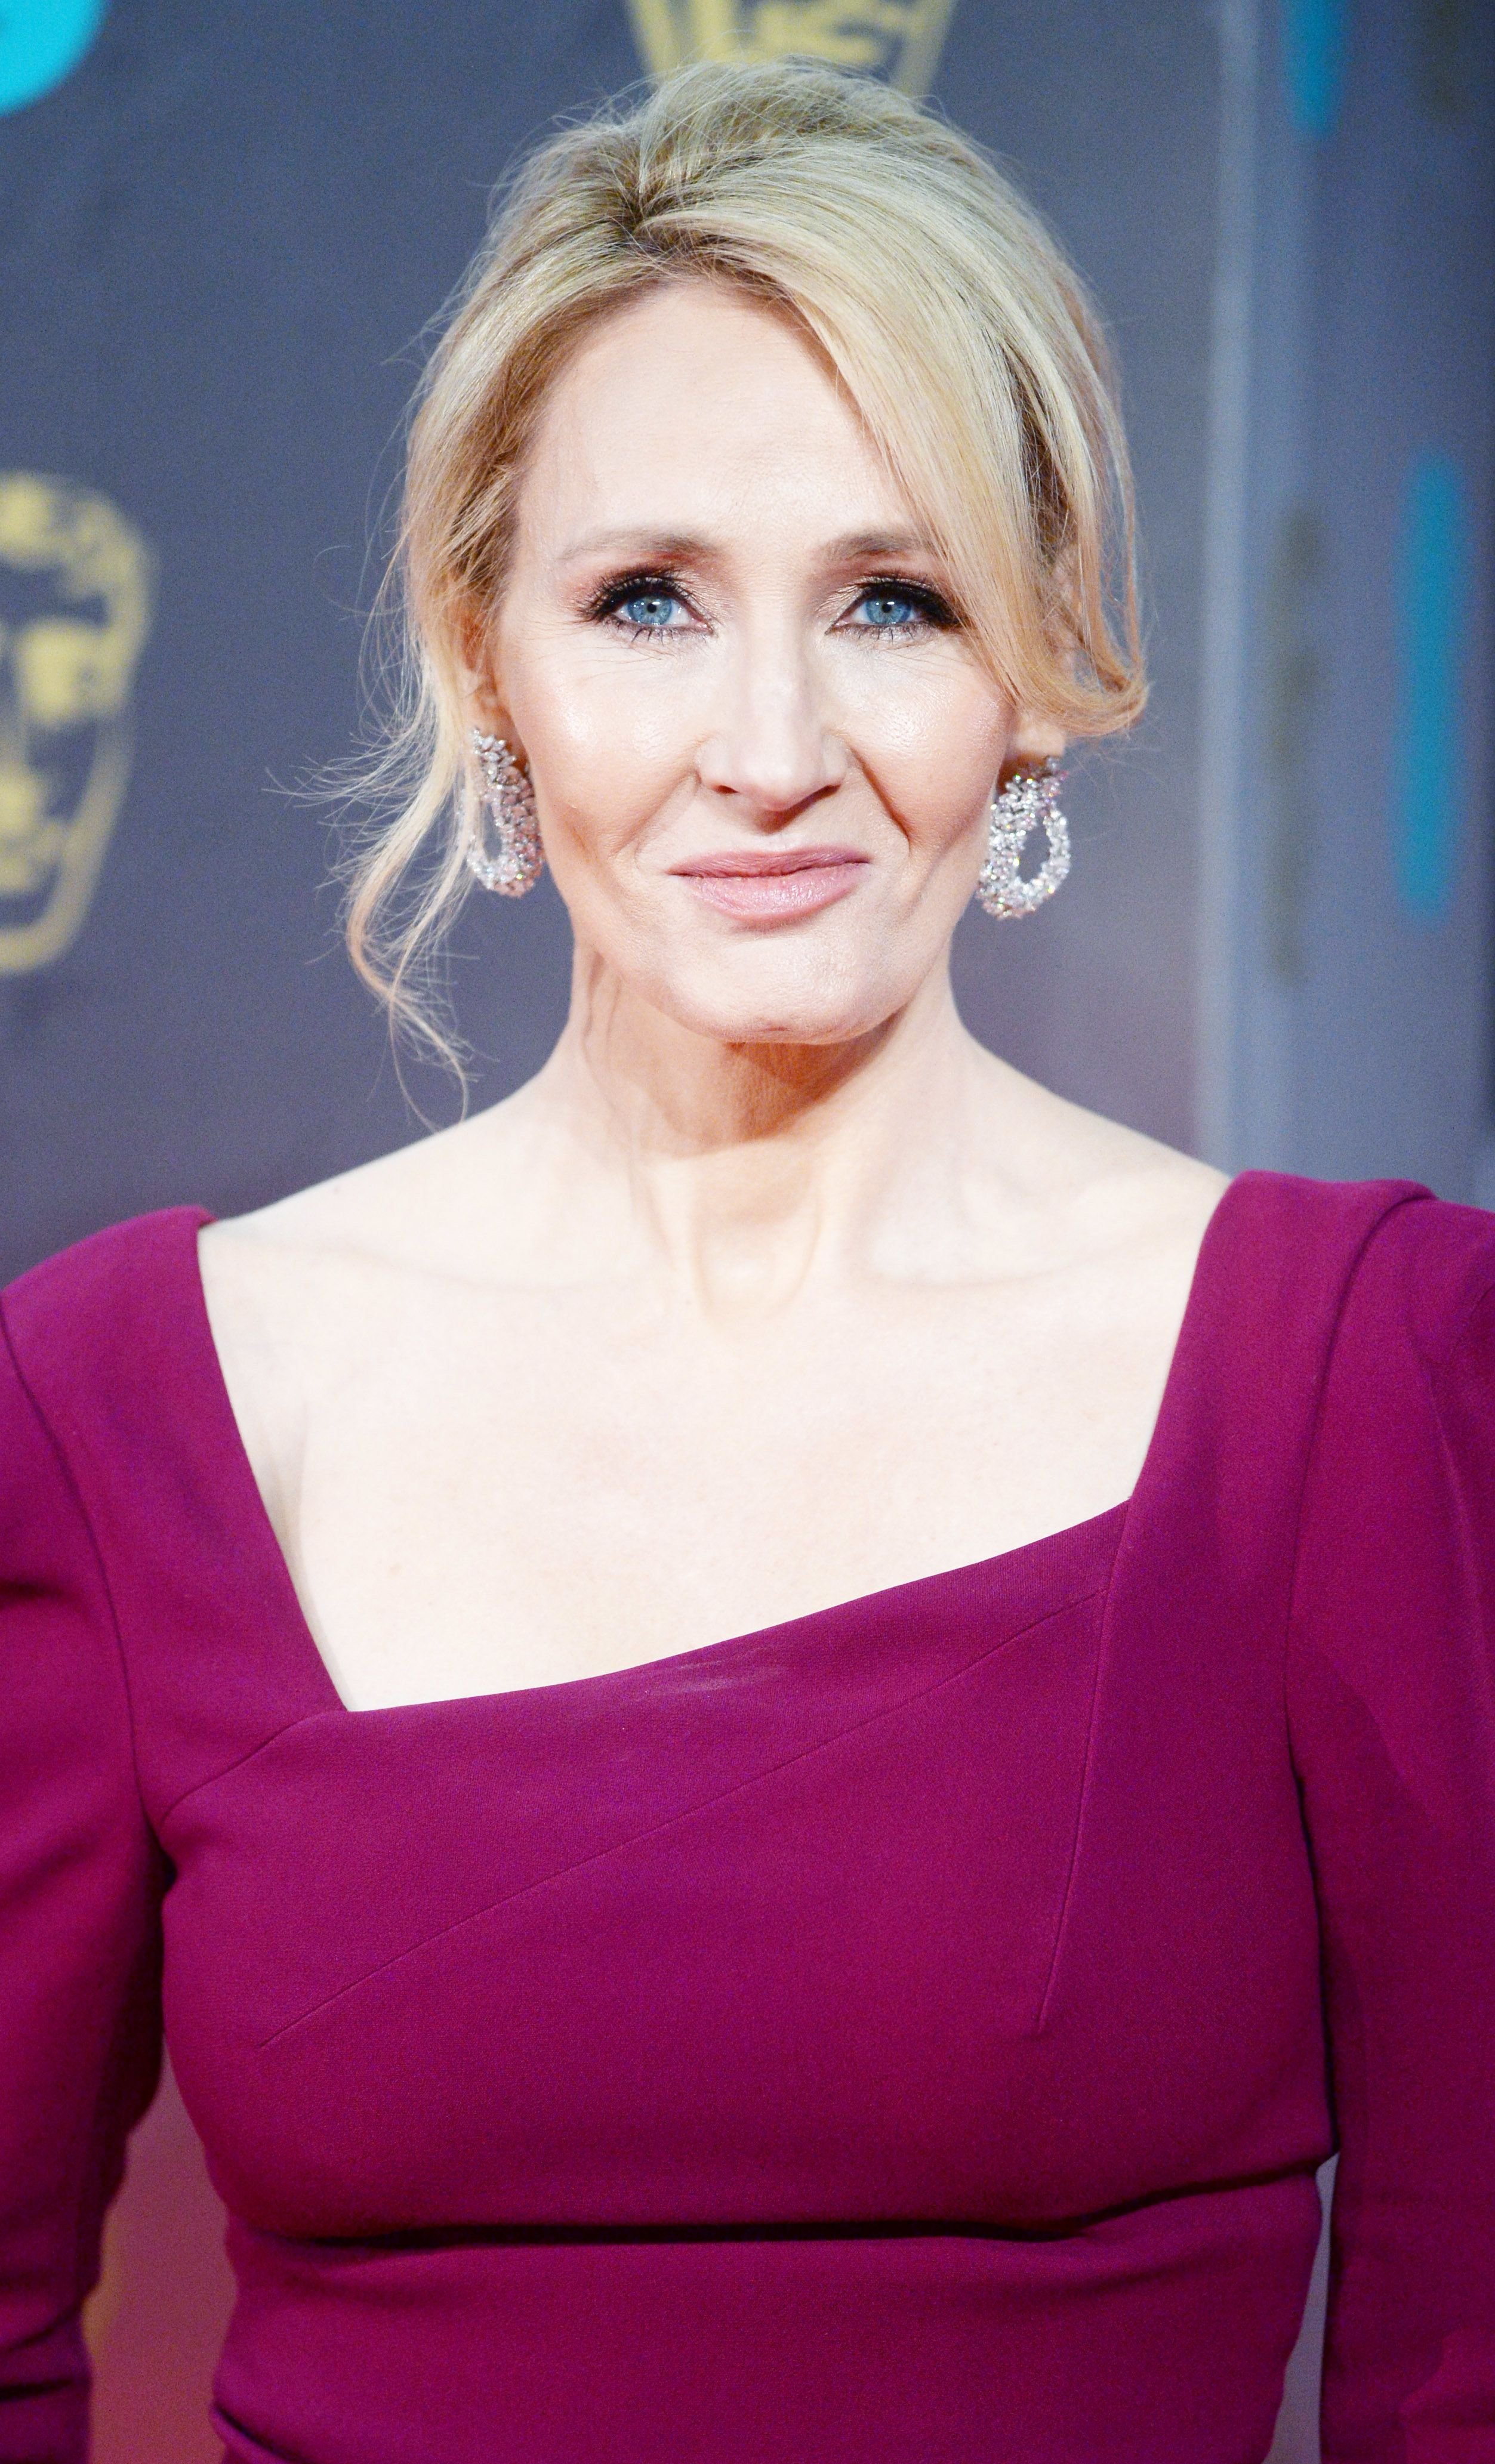 JK Rowling Ridicules US Gameshow Host For 'Vagina Hats'